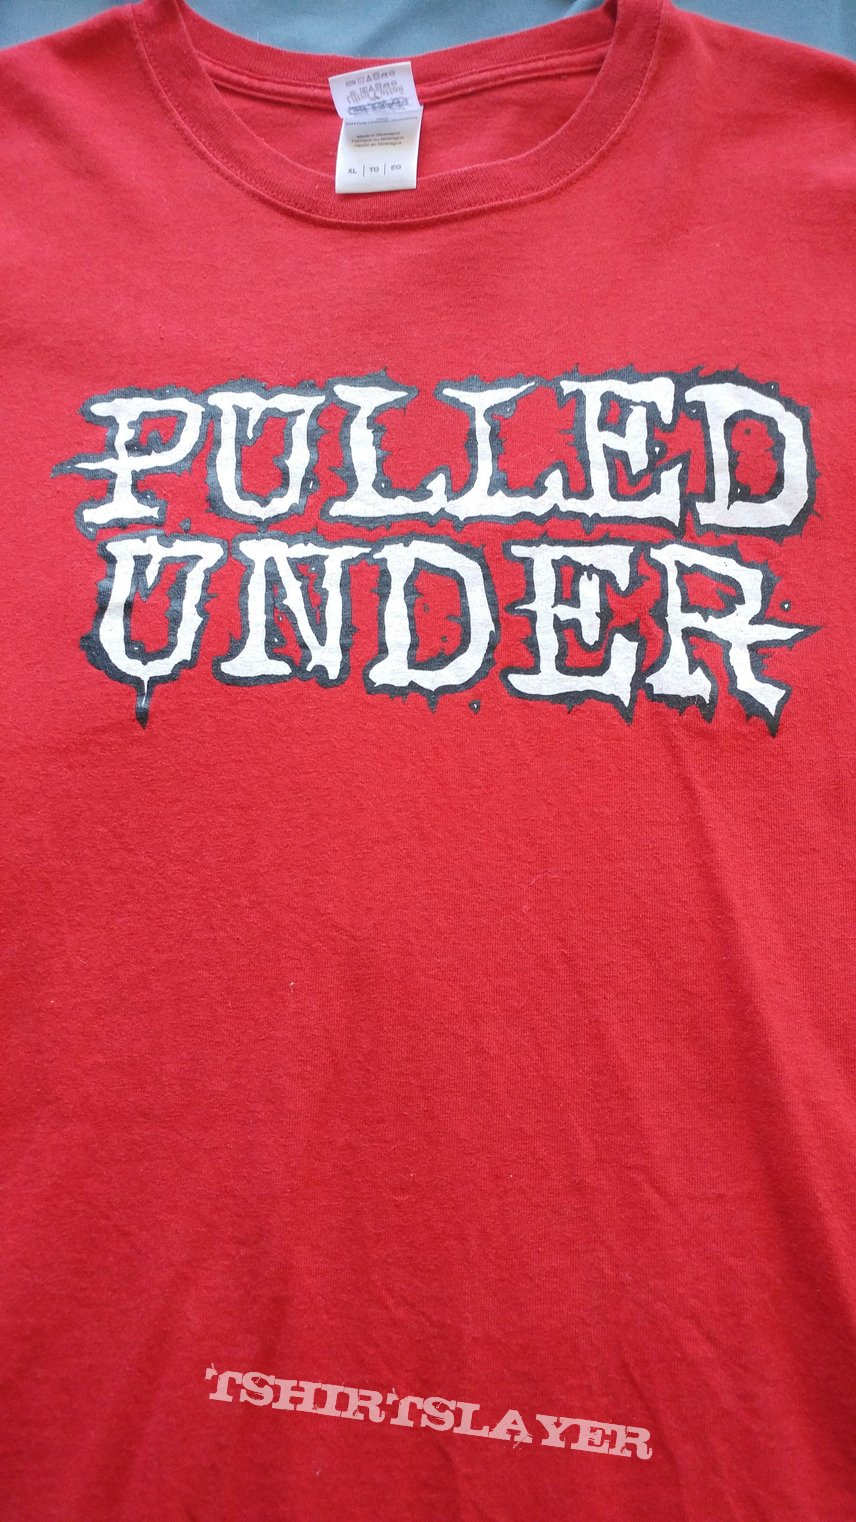 Pulled Under Harm Reduction shirt